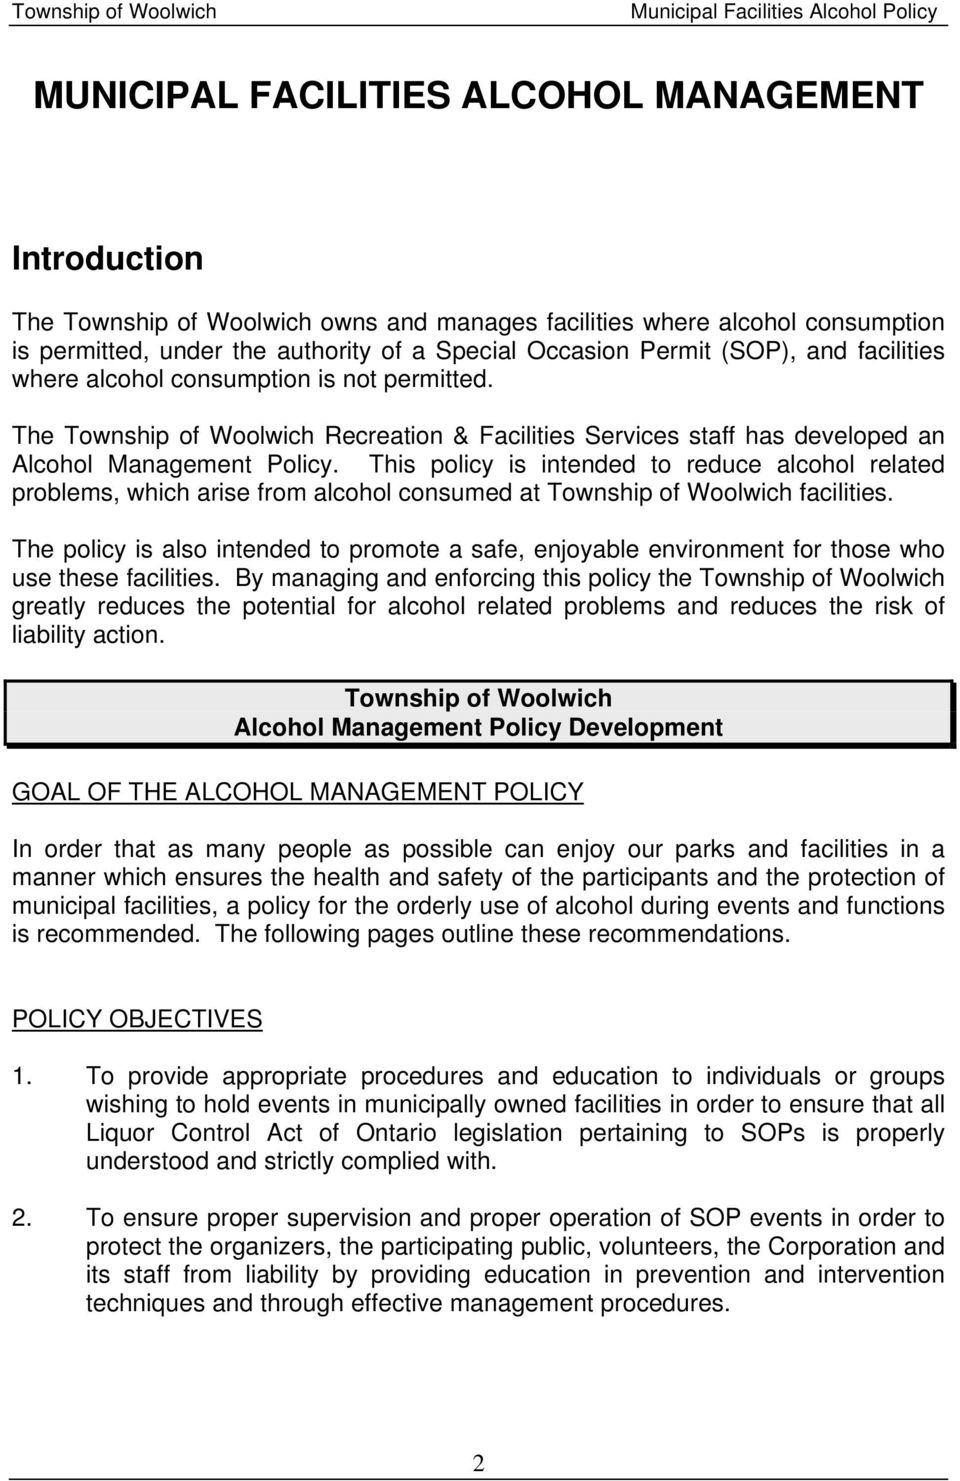 This policy is intended to reduce alcohol related problems, which arise from alcohol consumed at Township of Woolwich facilities.